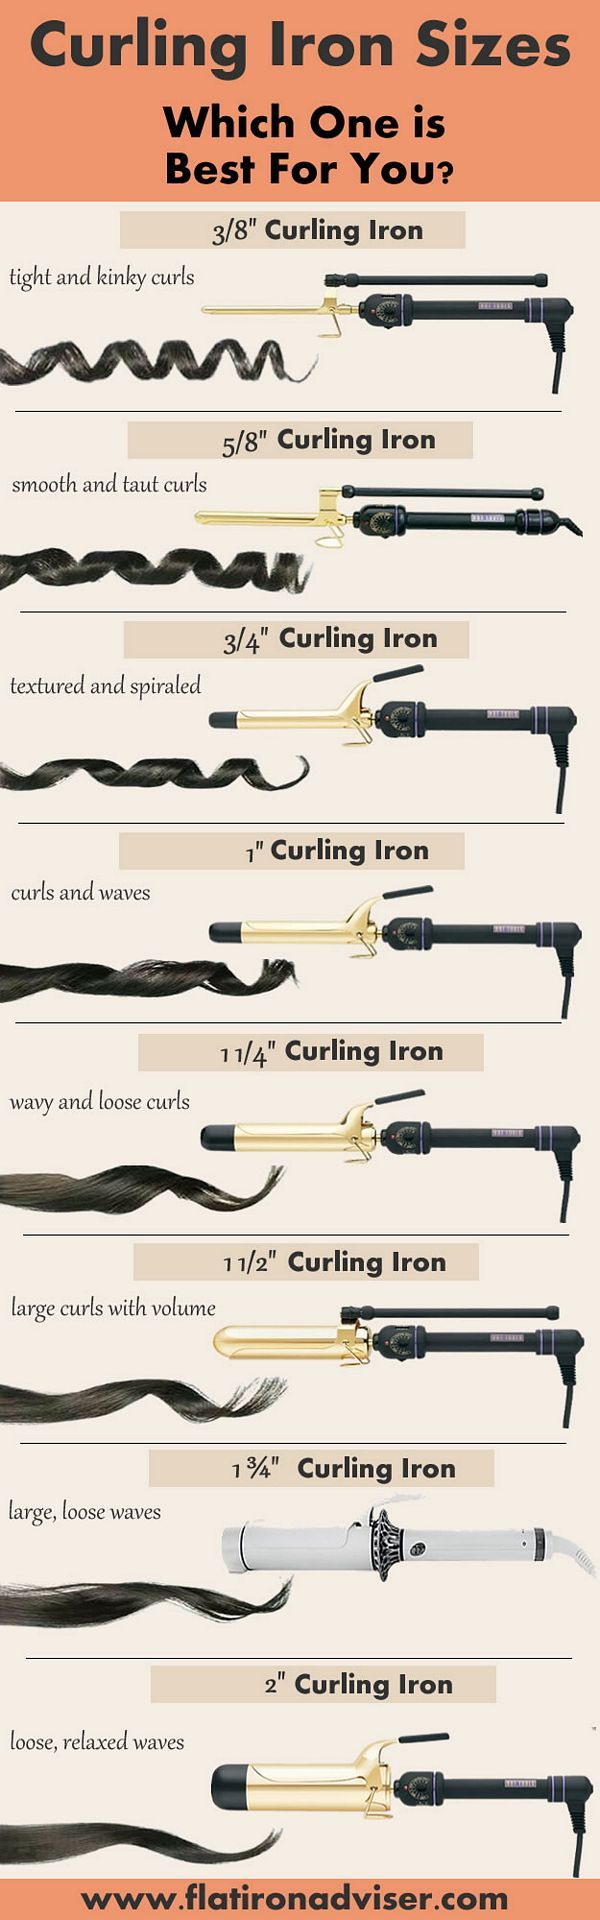 25+ best ideas about Curling Iron Size on Pinterest | Curling wand ...